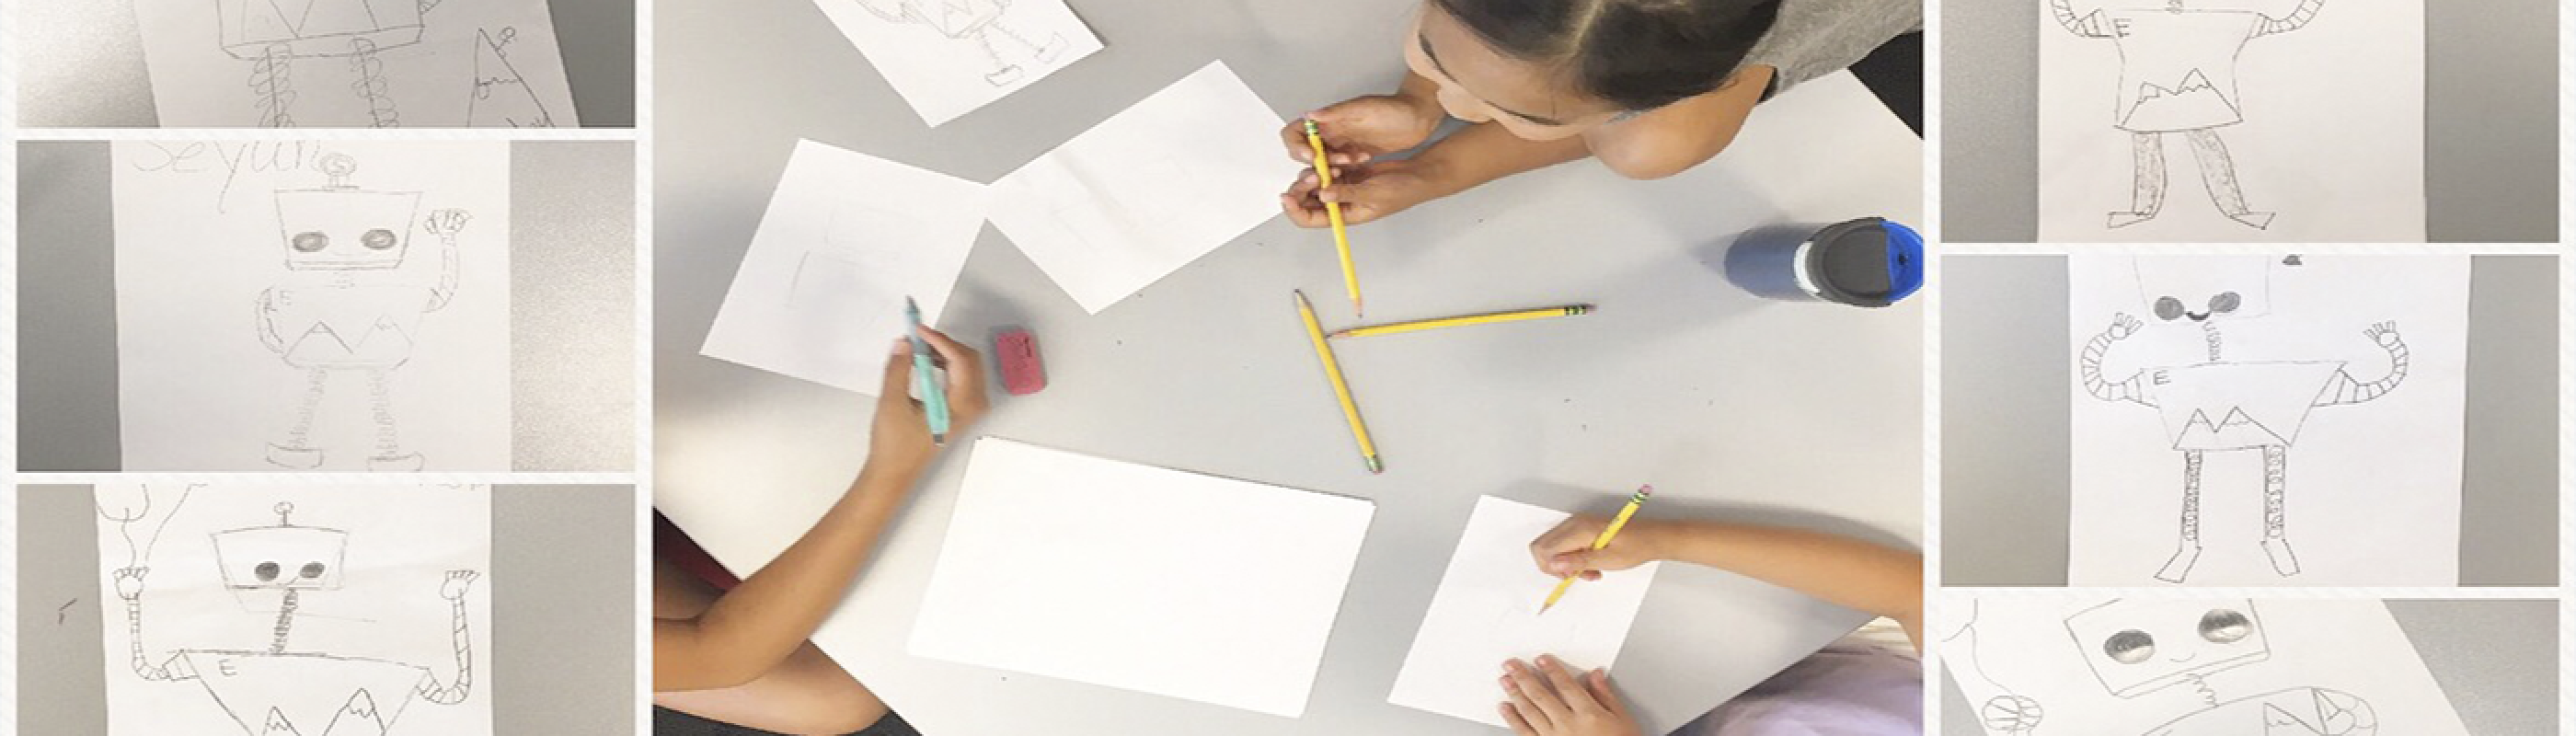 students drawing clint